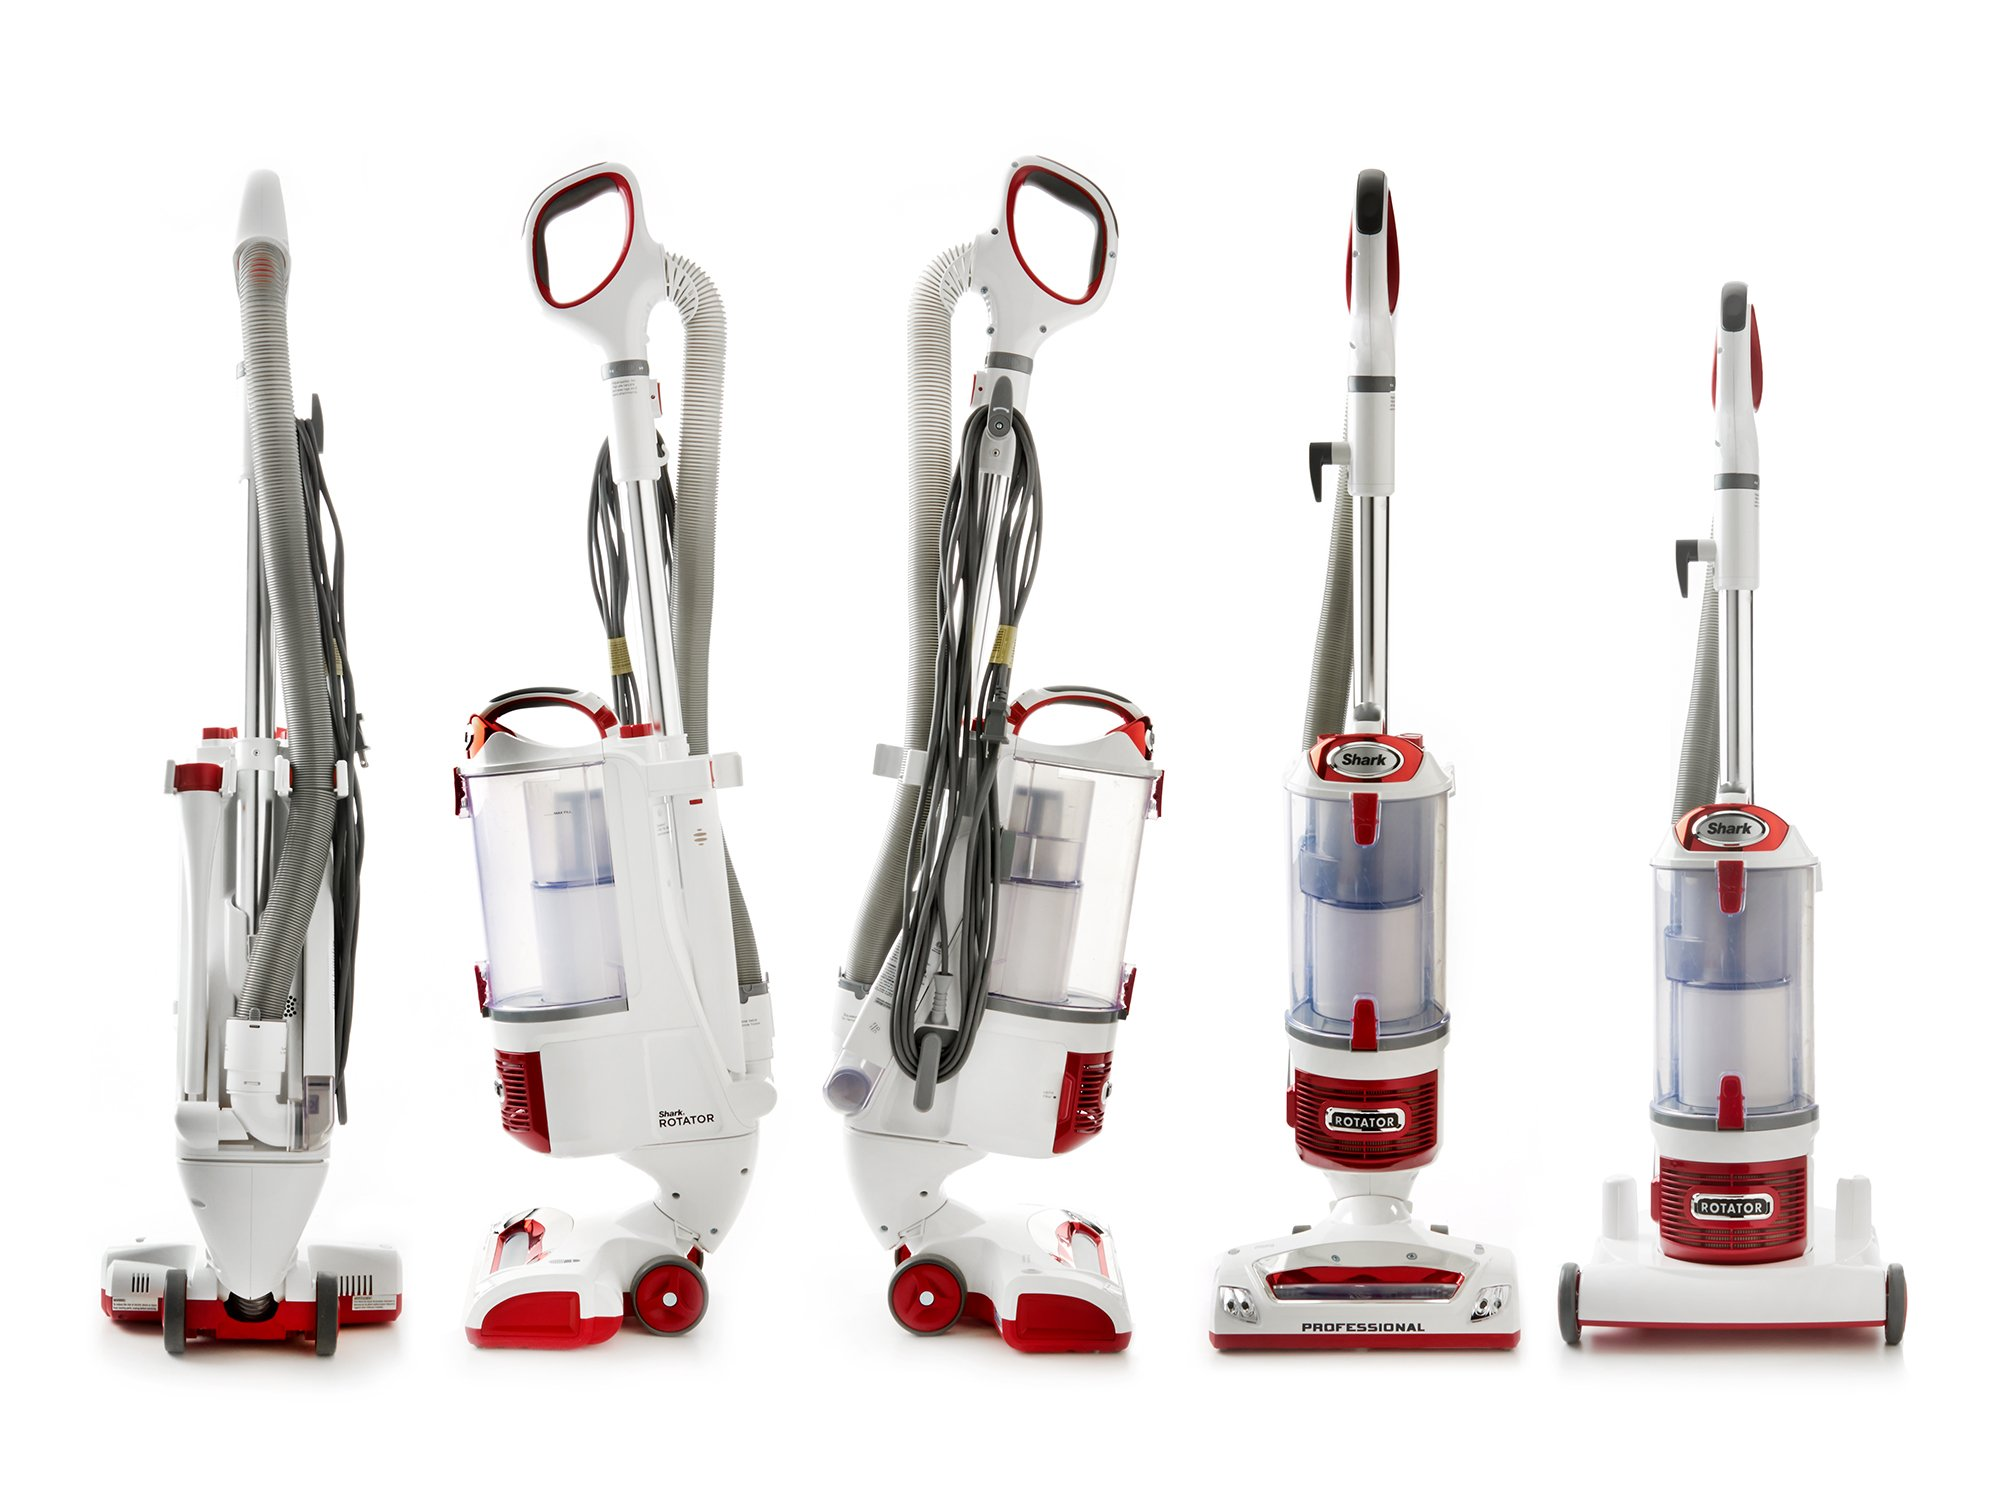 Shark Vacuums